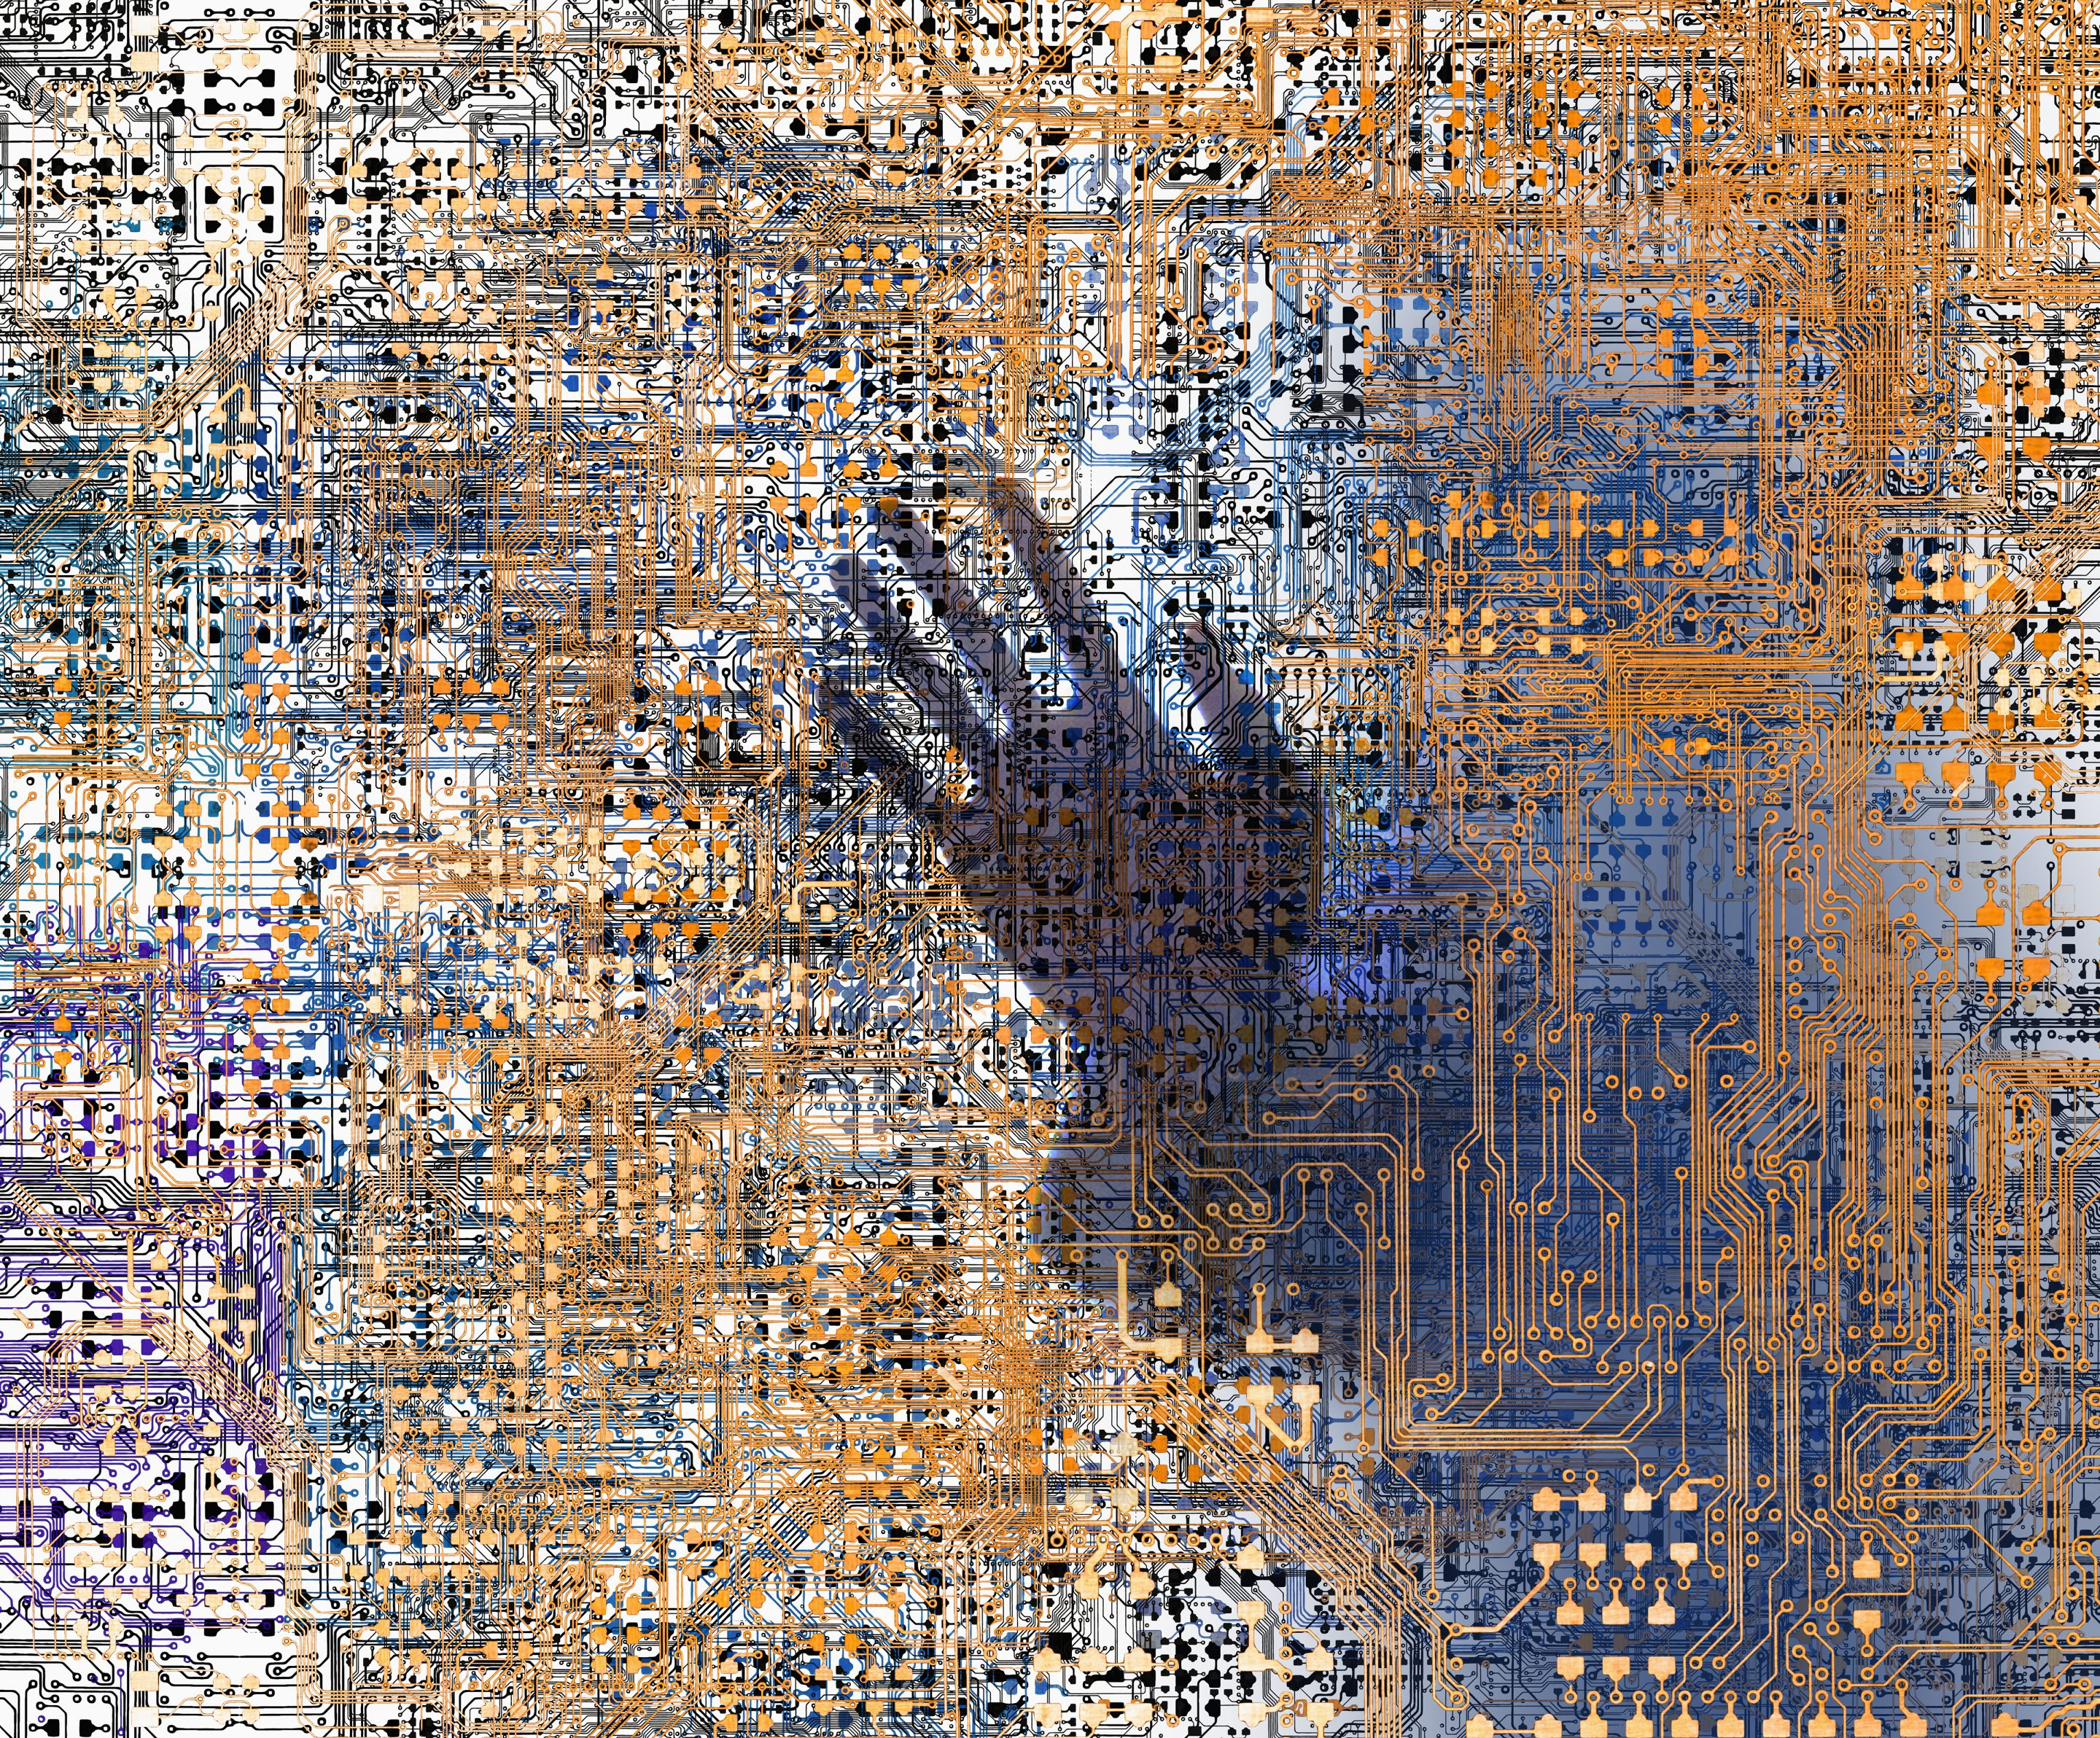 A ghostly hand is seen within a complex network of computer circuitry. Fingerprinting, endpoint visibility, and back ups are all necessary steps to safeguard against data manipulation.